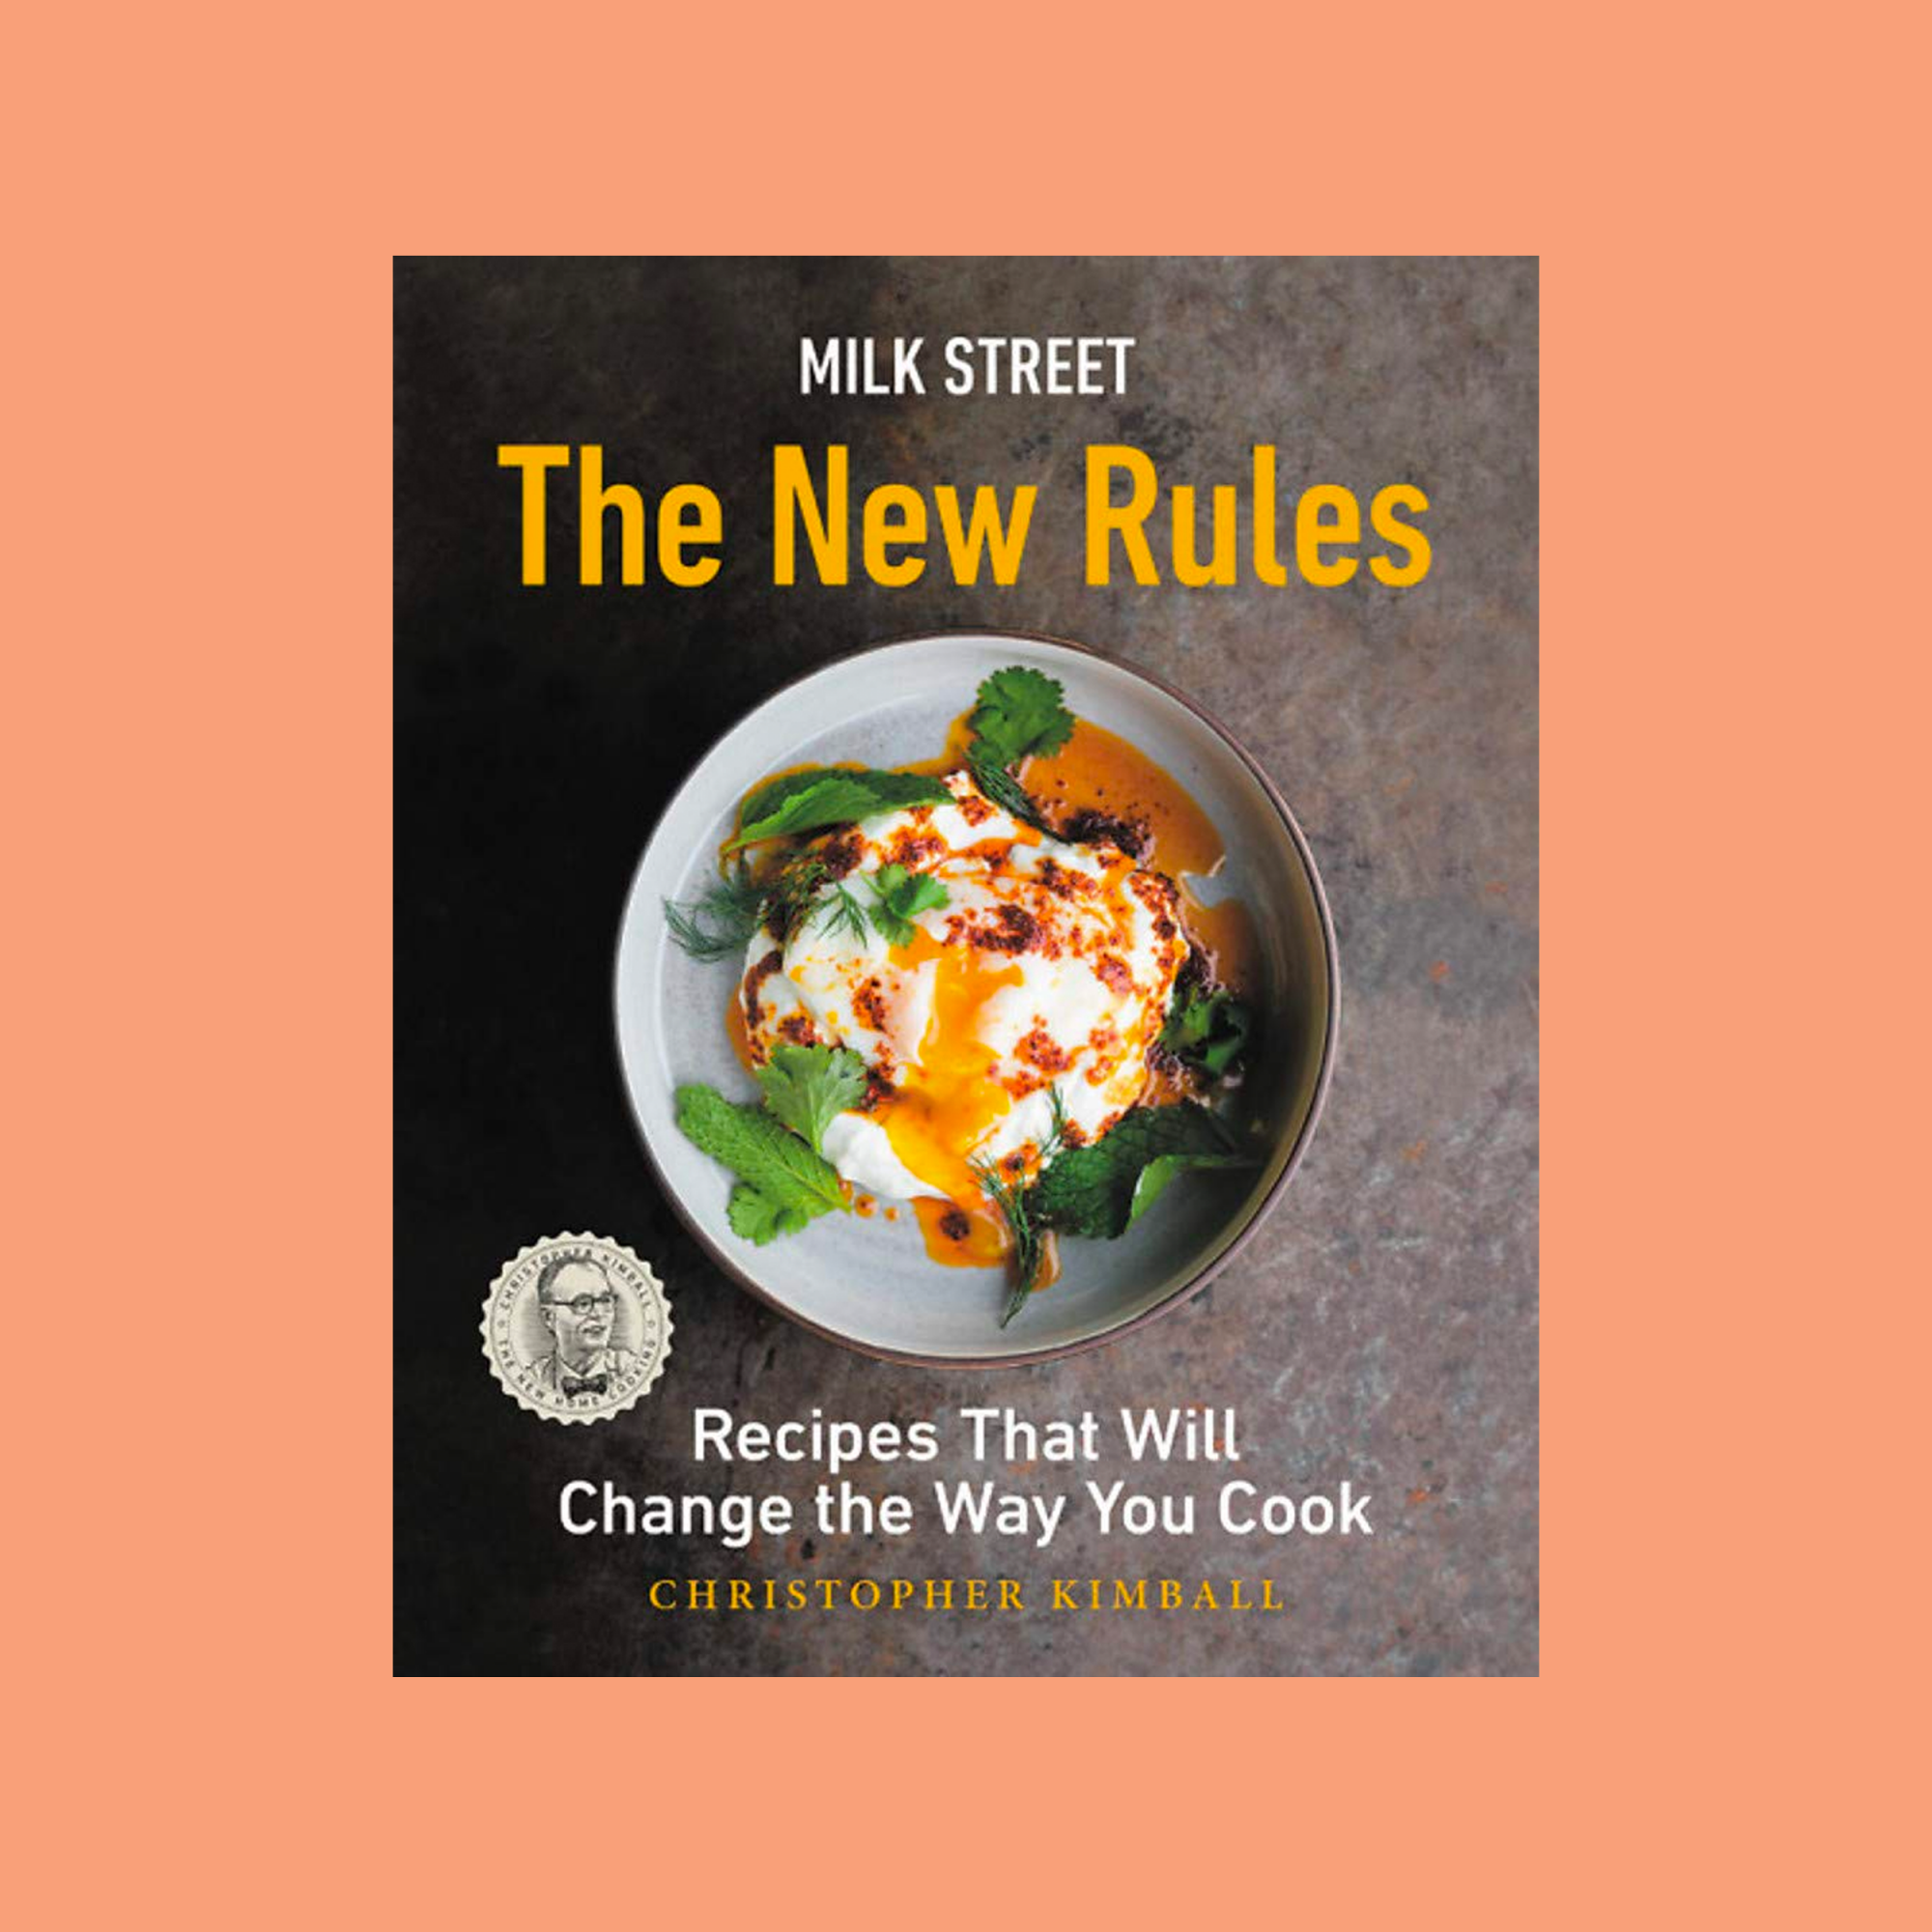 The New Rules cookbook